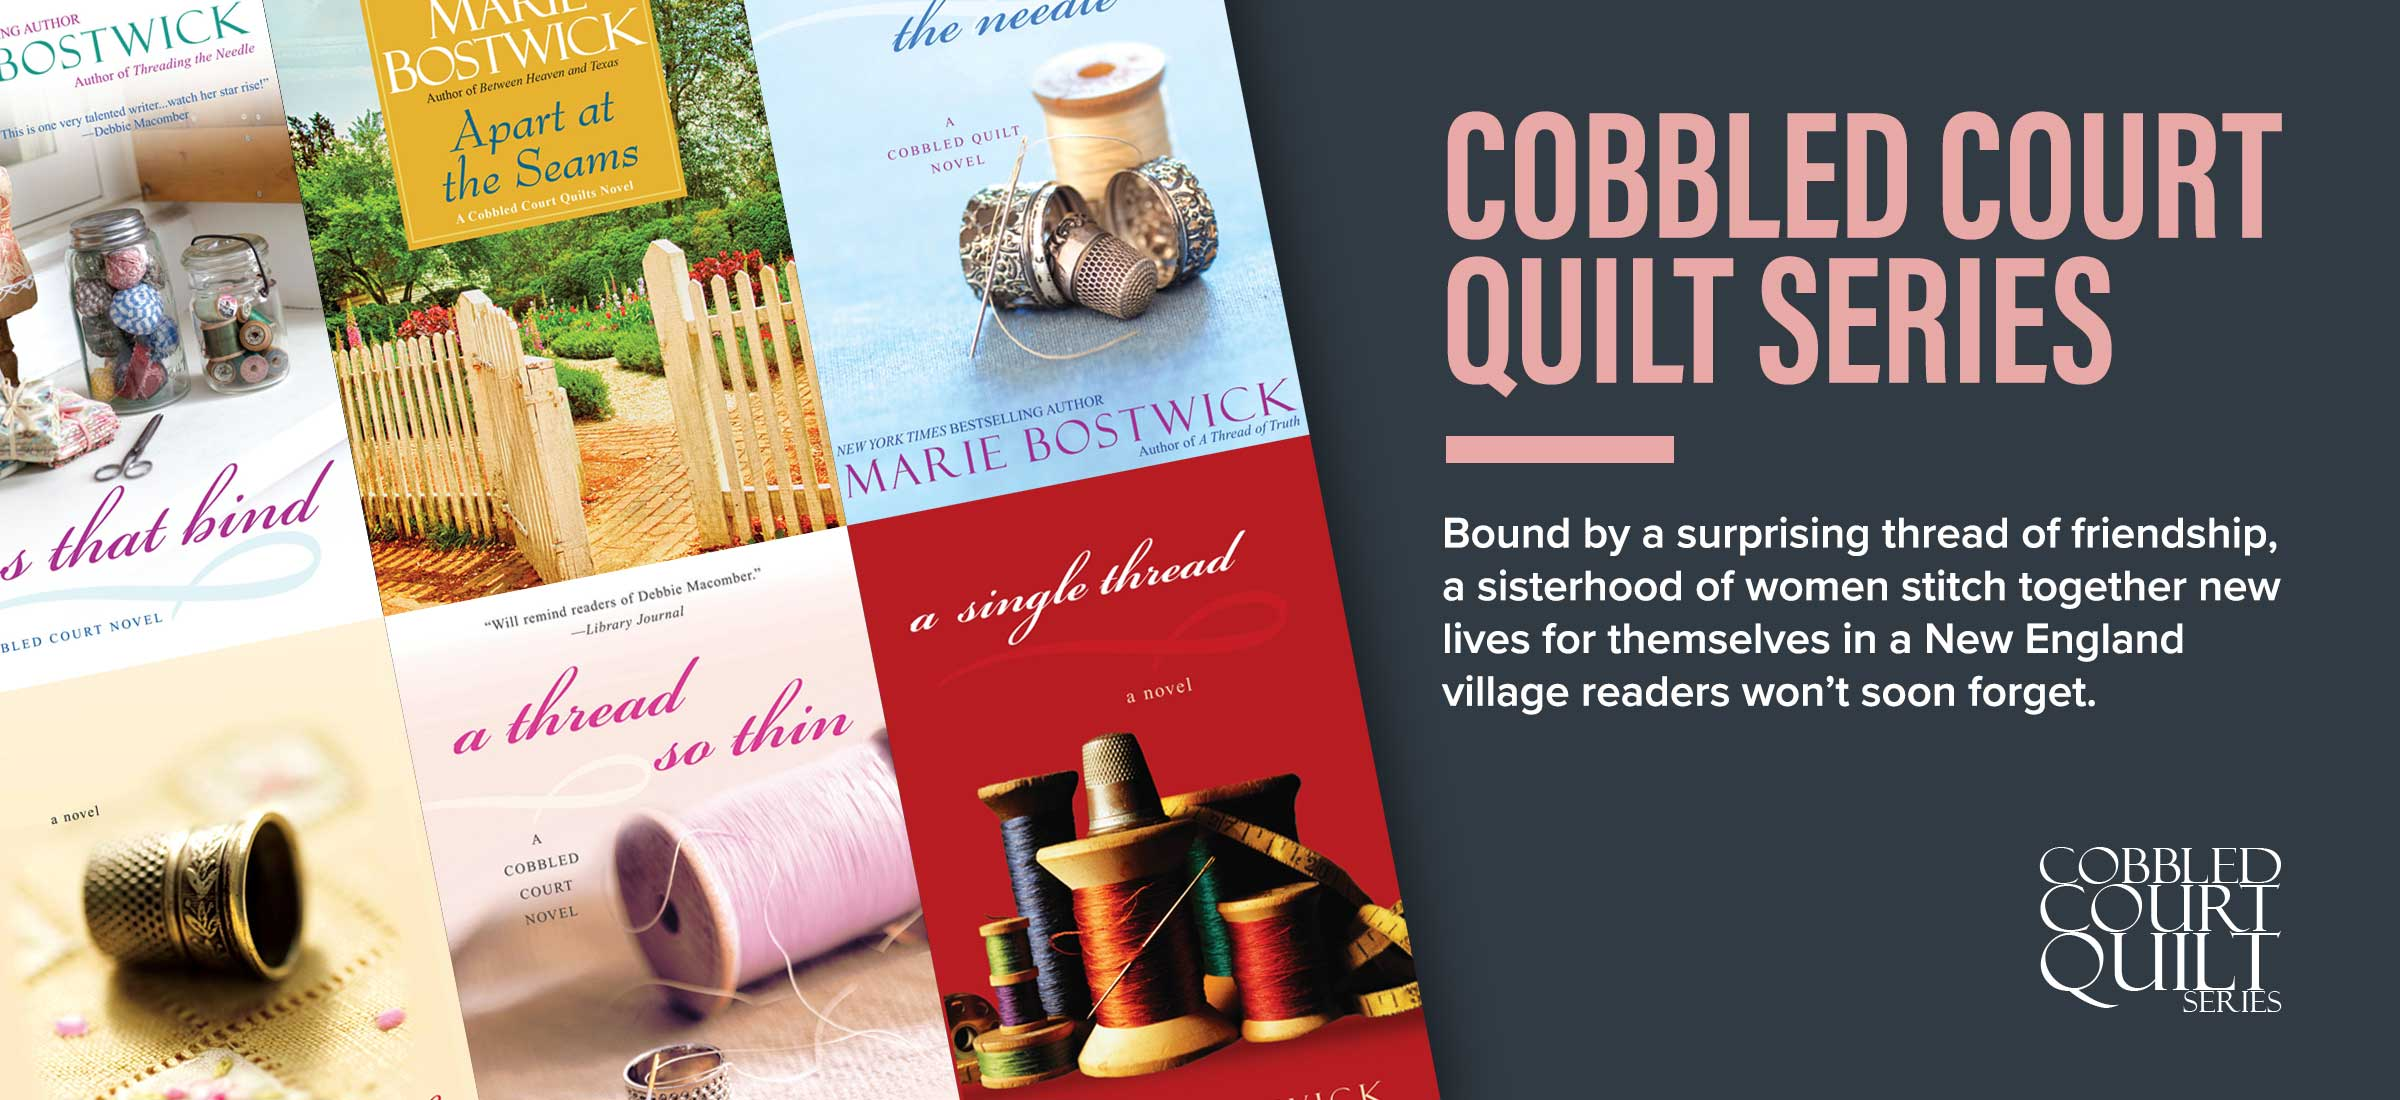 Cobbled Court Quilt Series by Marie Bostwick